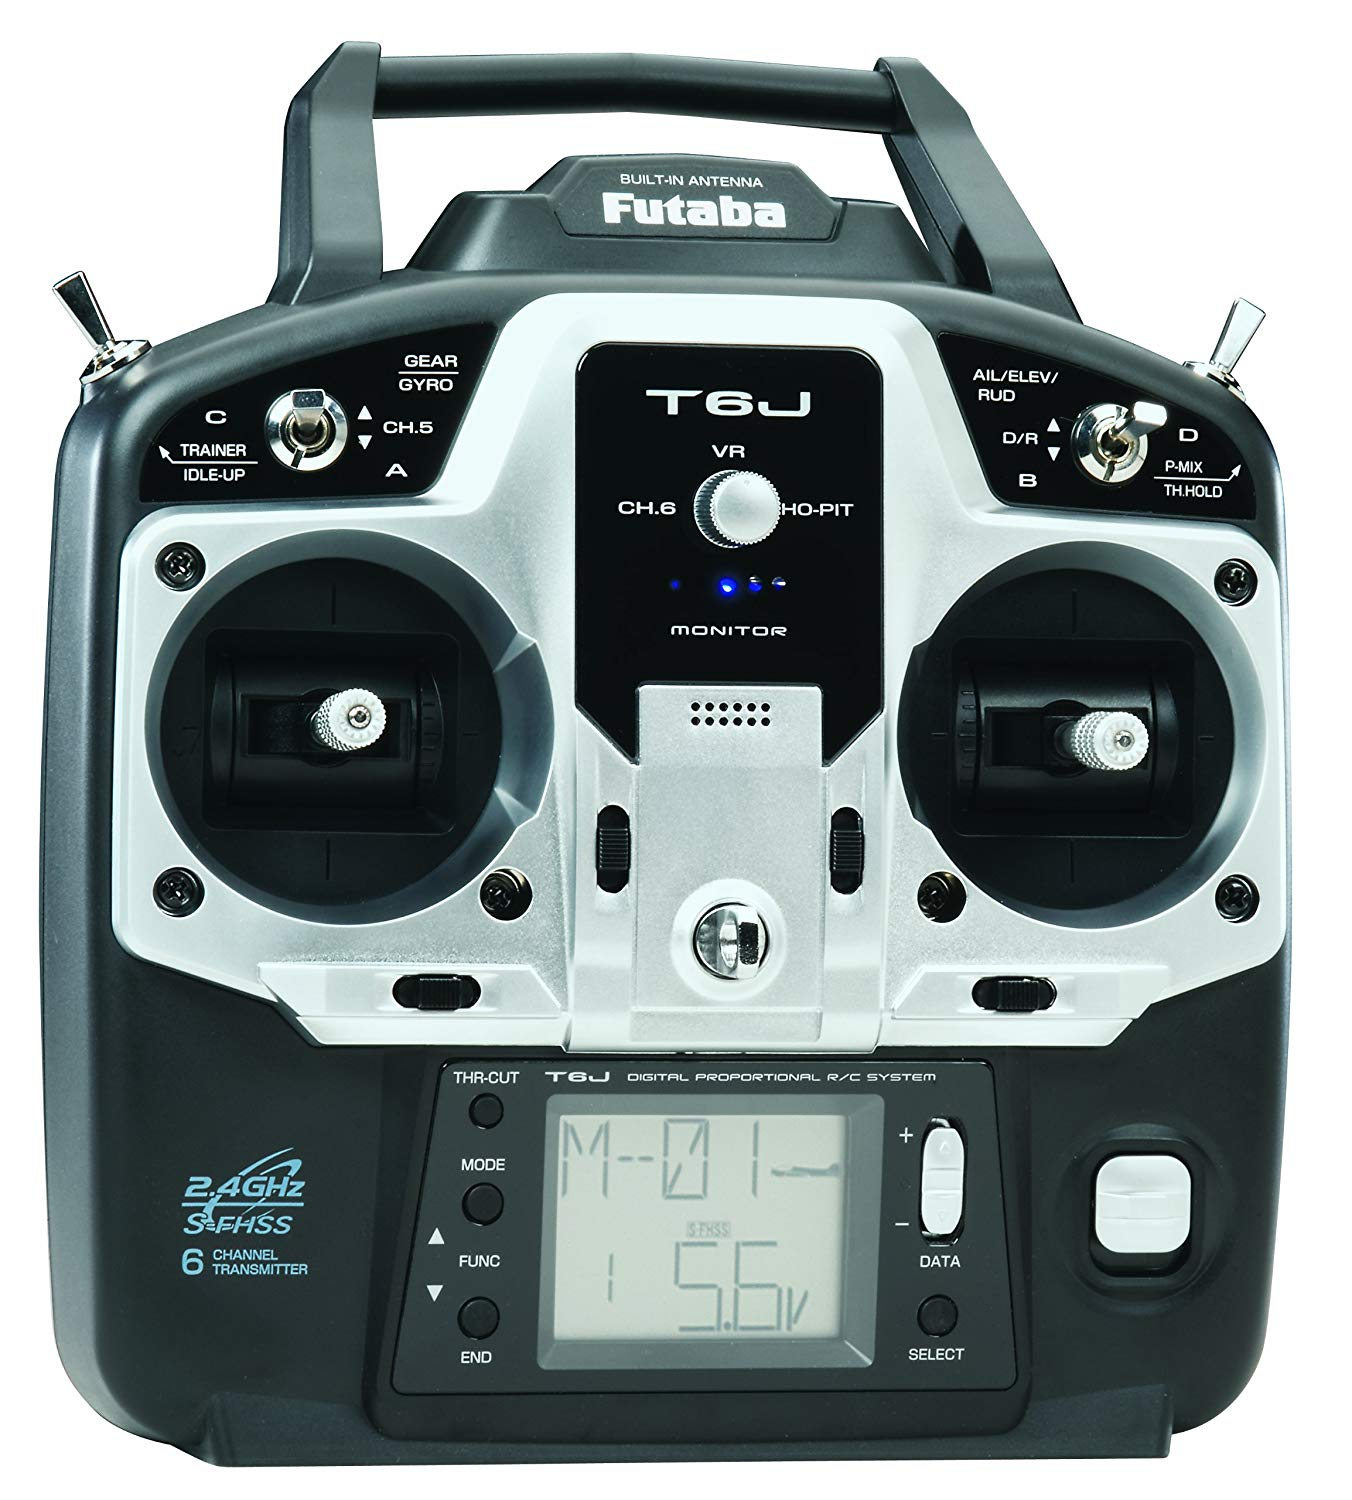 Futaba Radio Transmitter with Receiver